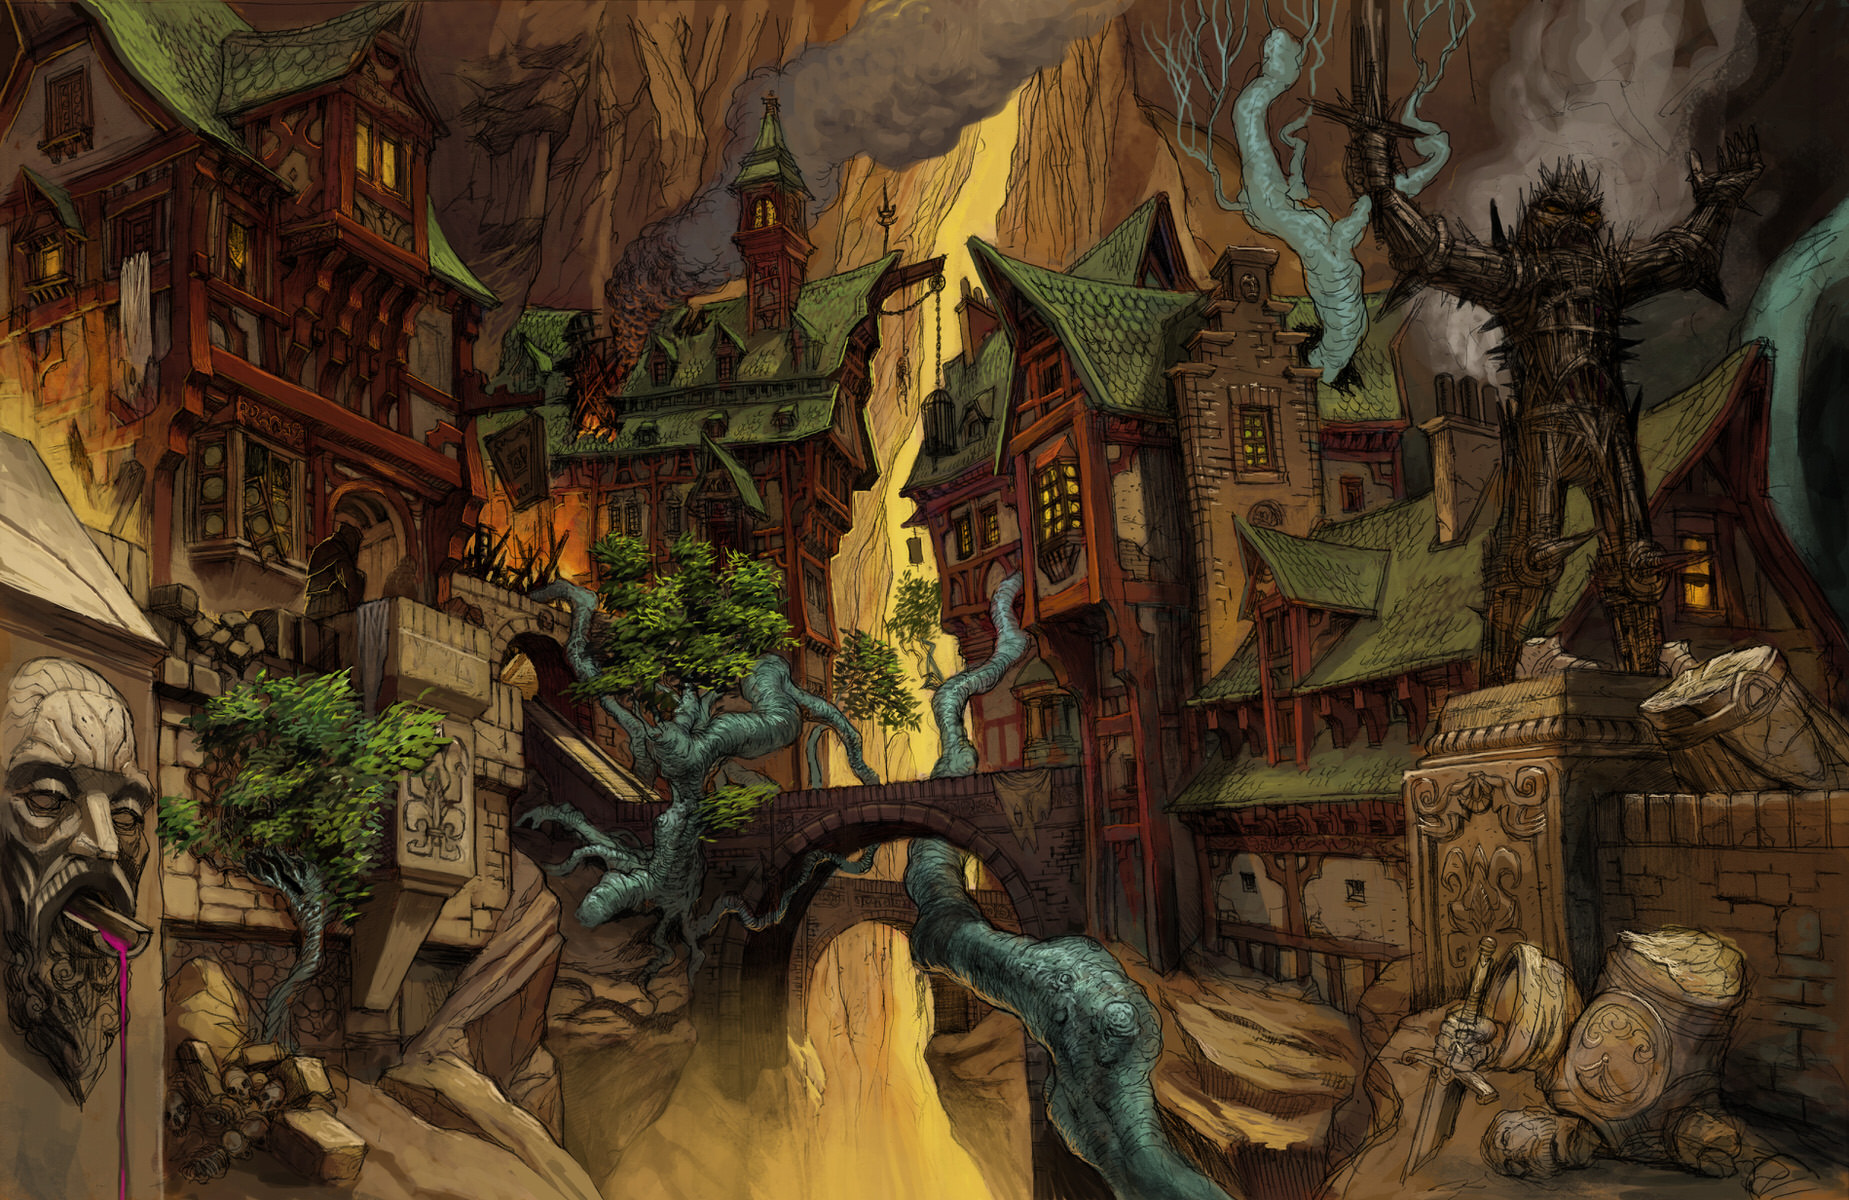 Transformers Fall Of Cybertron Wallpaper Hd Canyon Village Concept Art For Kingdoms Of Amalur Sean